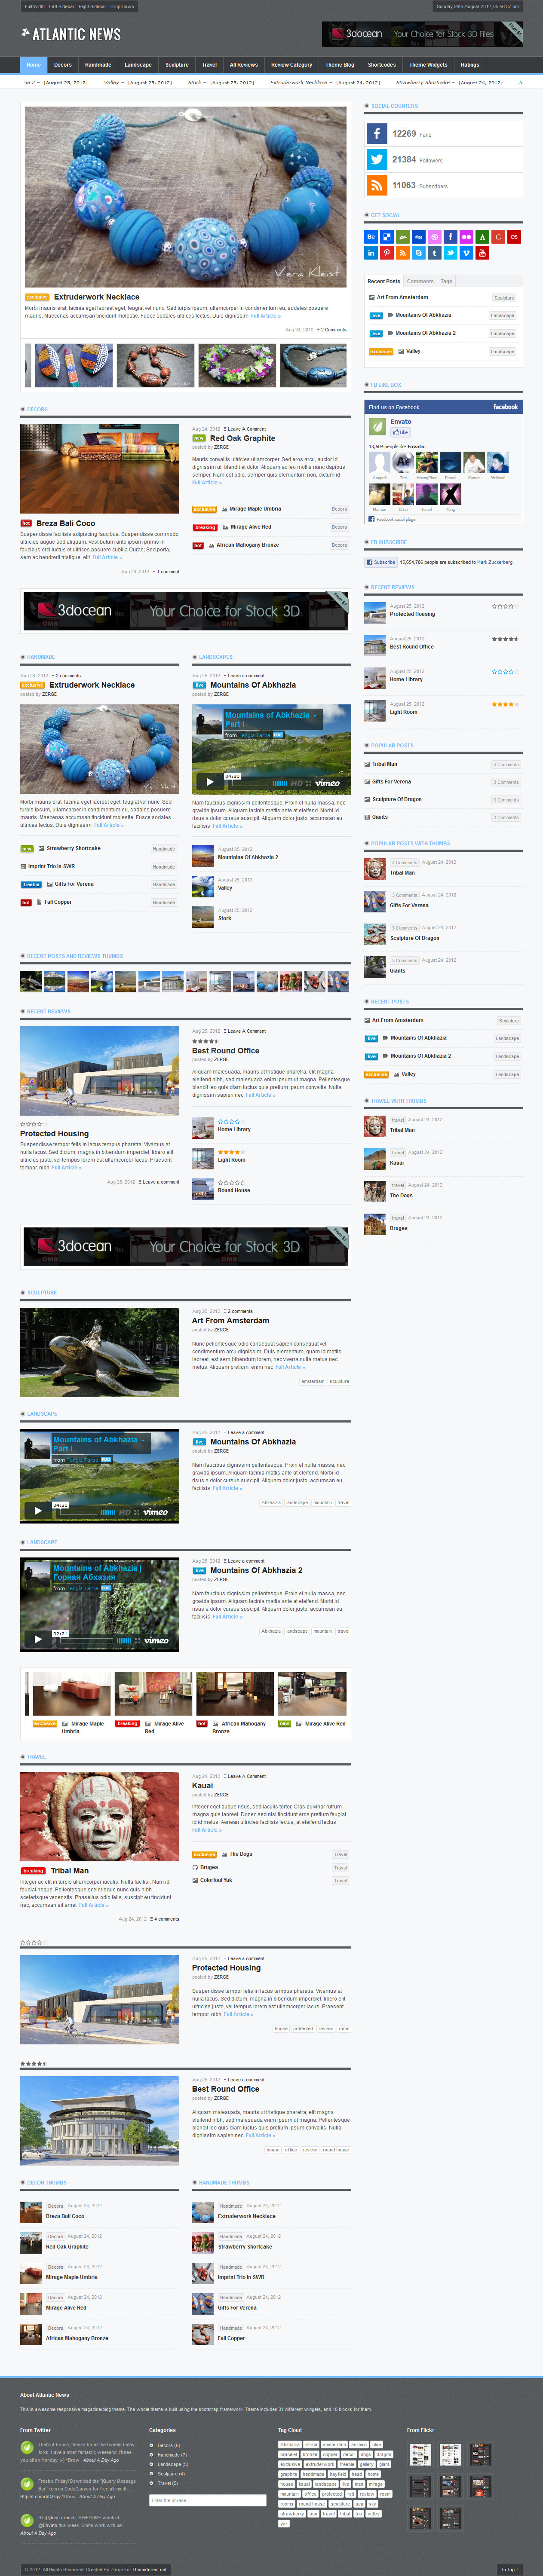 Atlantic News - Responsive WordPress Magazine Blog - Home Page